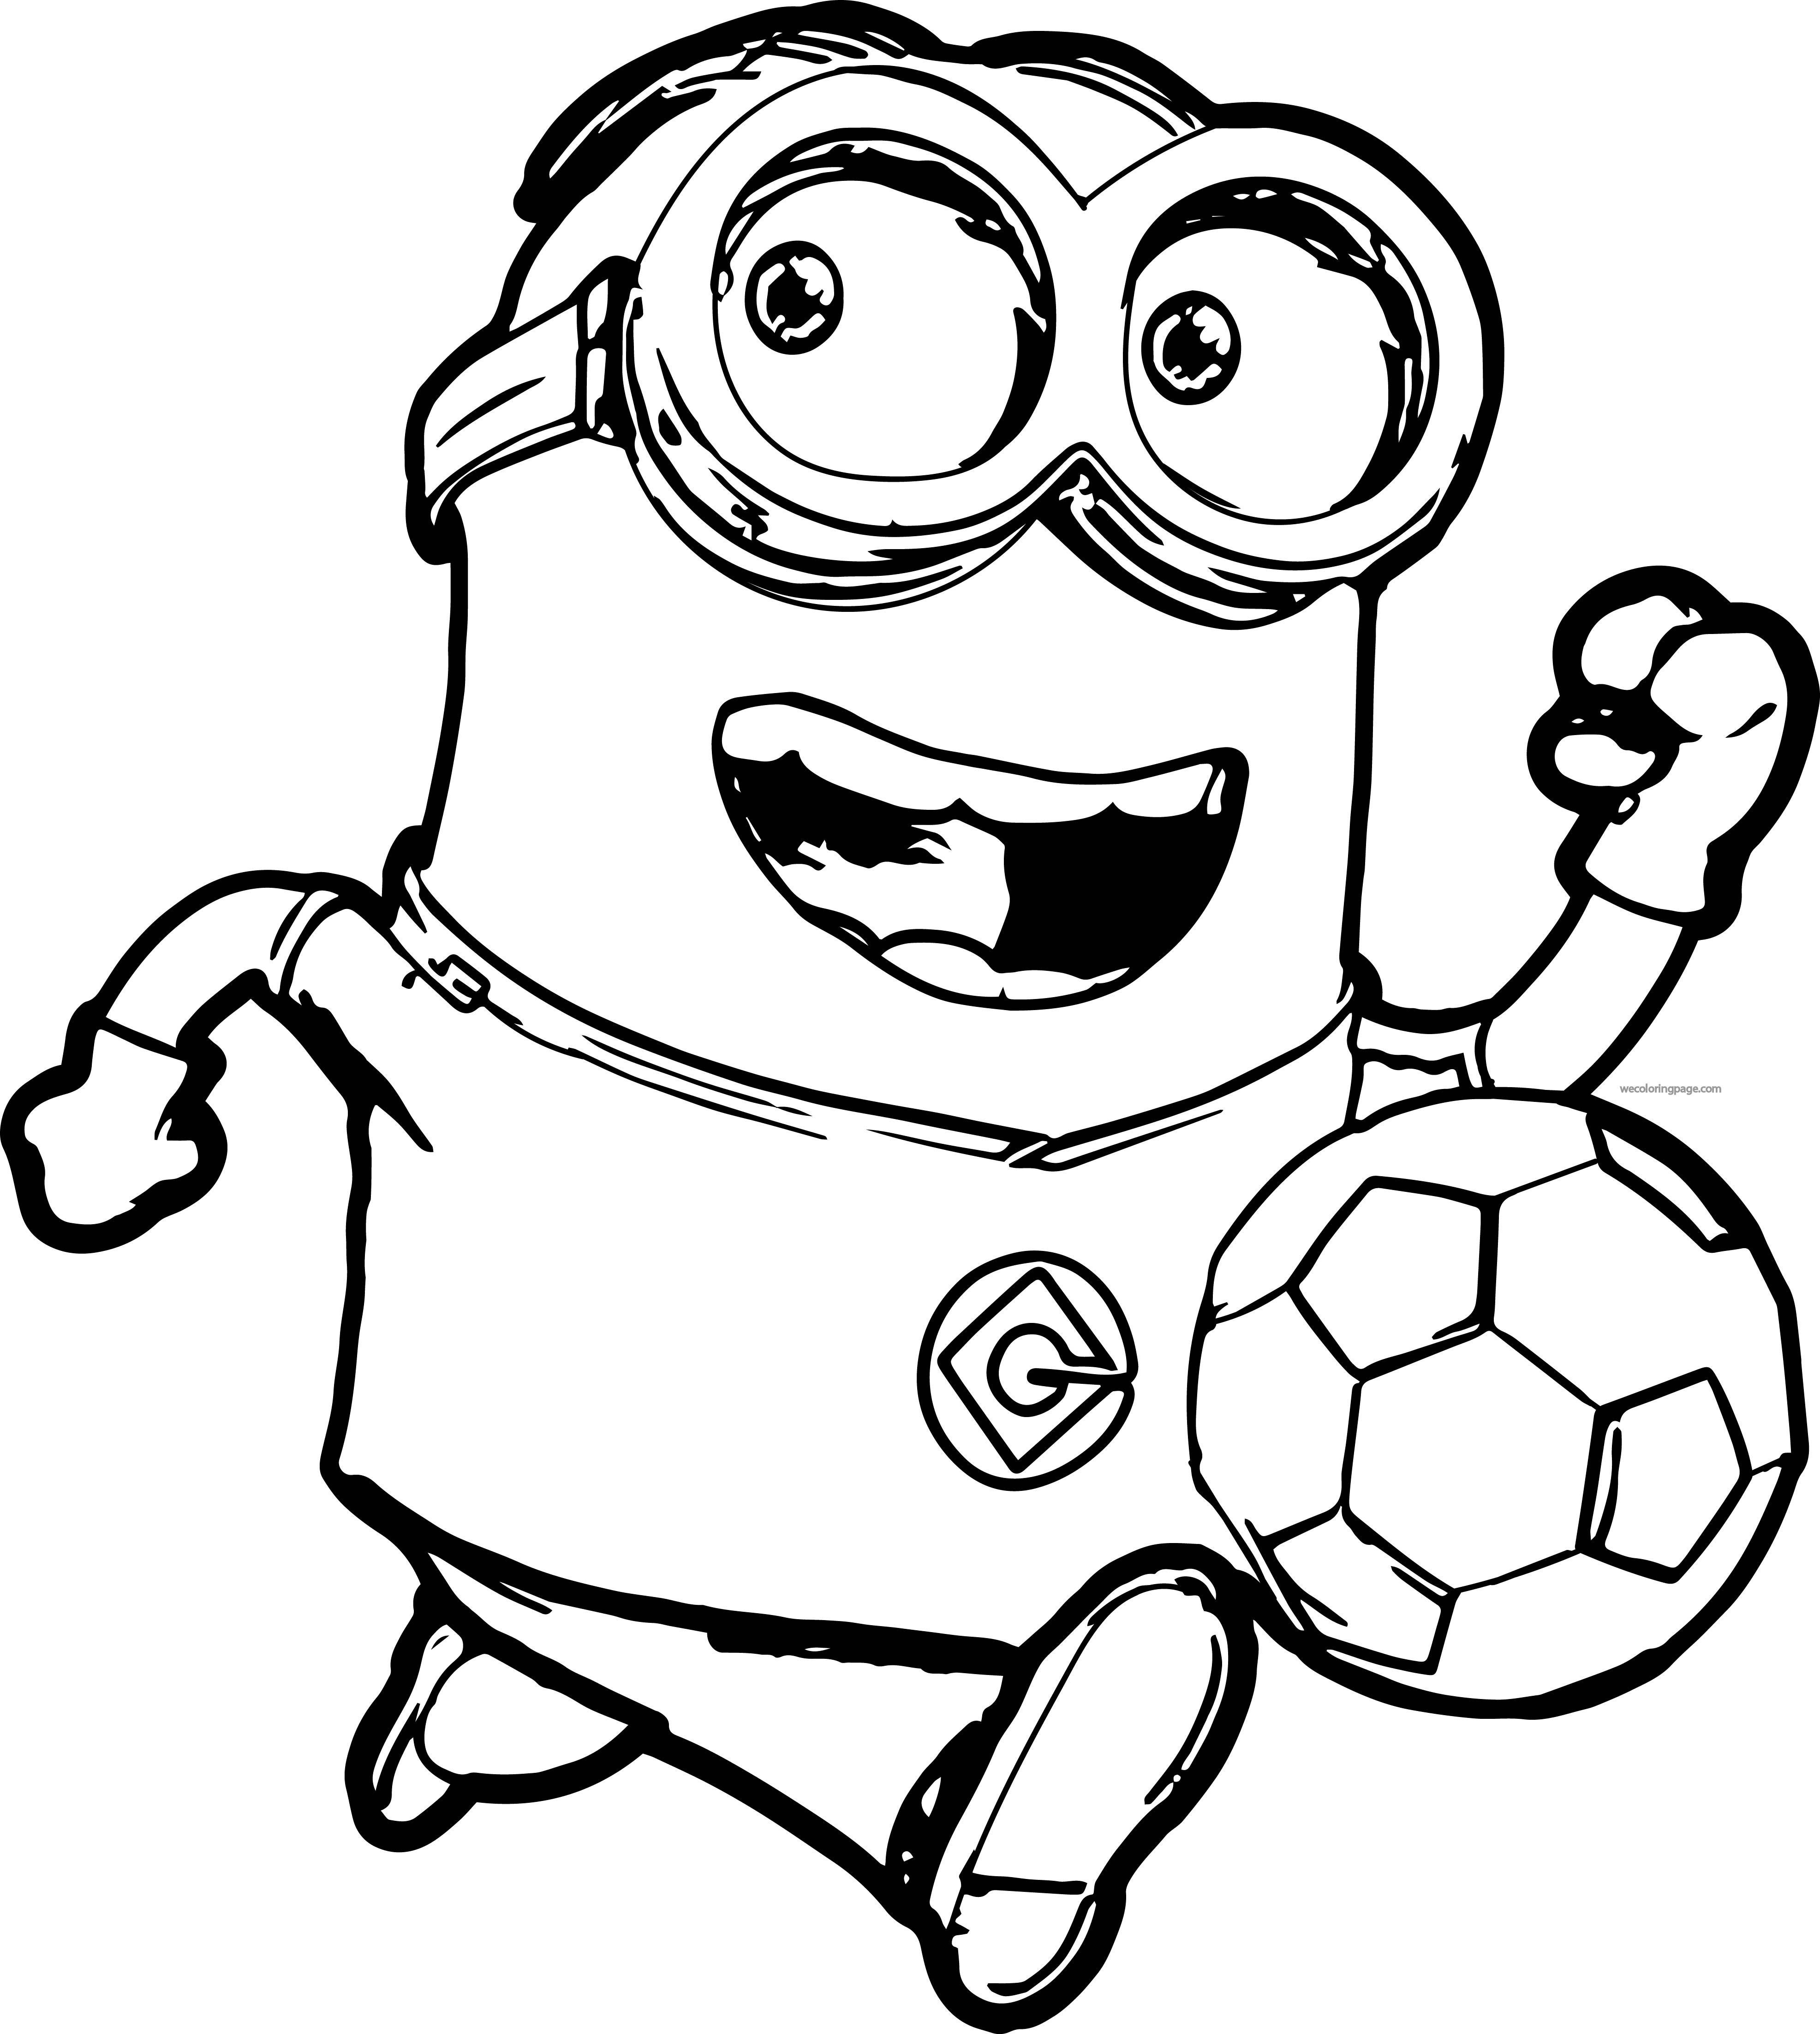 Minion Free Coloring Printables Free Minion Coloring Pages Printables Free Minion Coloring Minion Coloring Pages Minions Coloring Pages Sports Coloring Pages